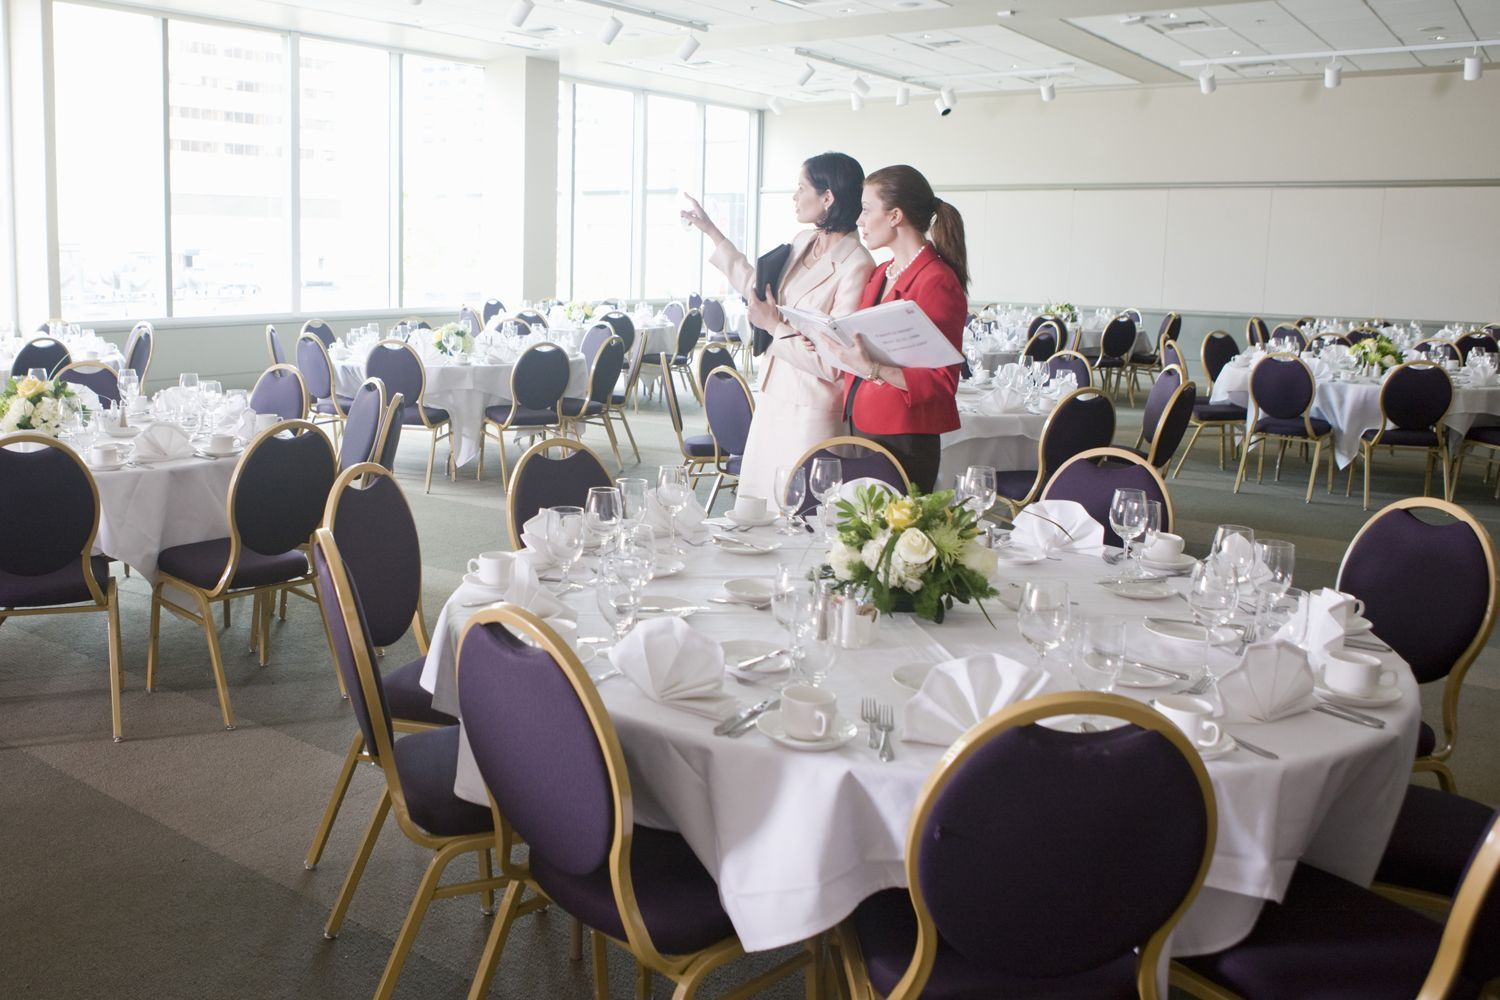 event management business for women